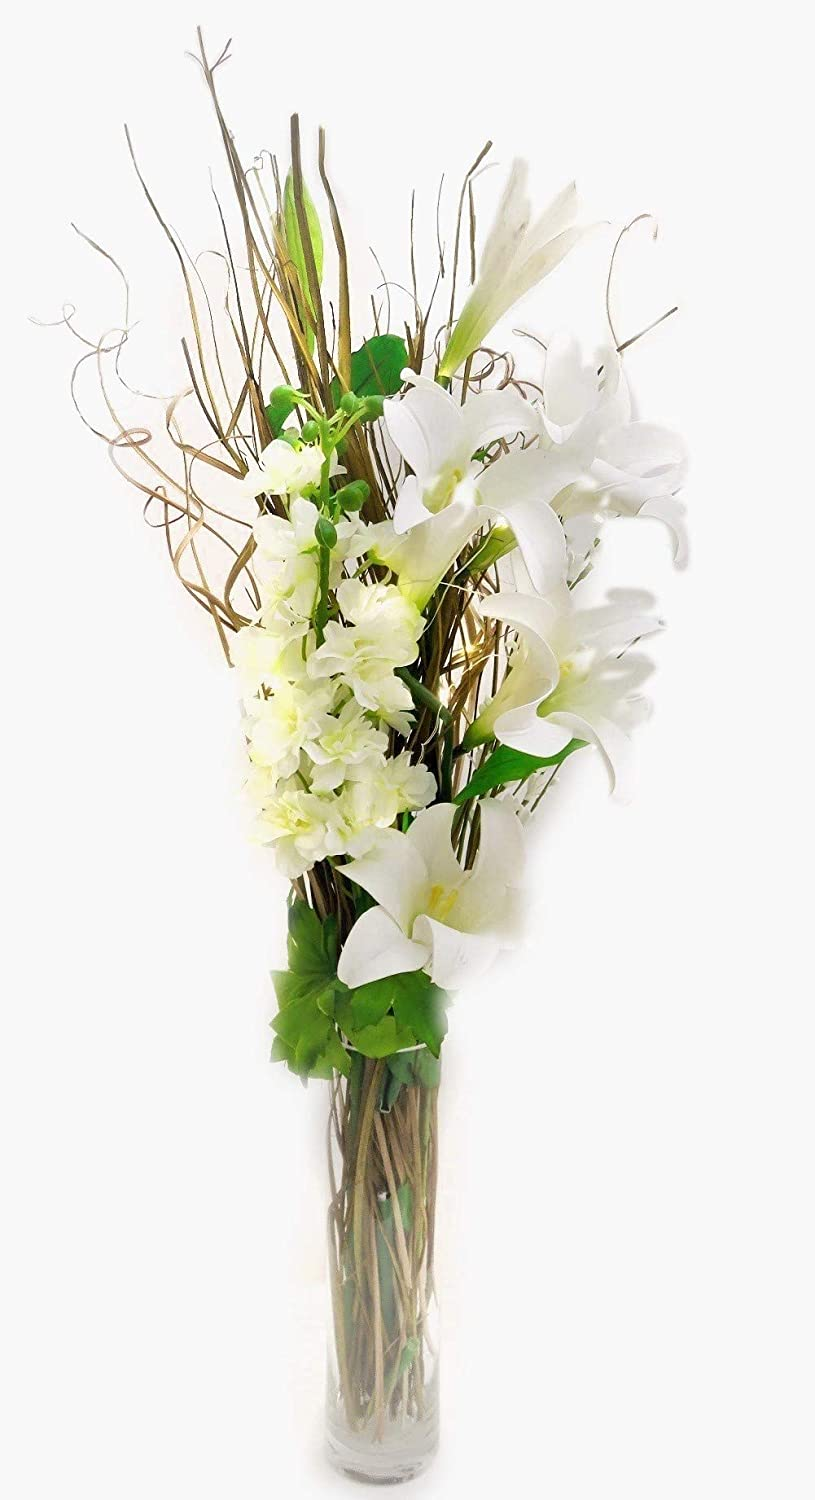 Dried & Artificial Magnolia, Hydrangea Bouquet & 20 lights 30 cm VASE Included link products